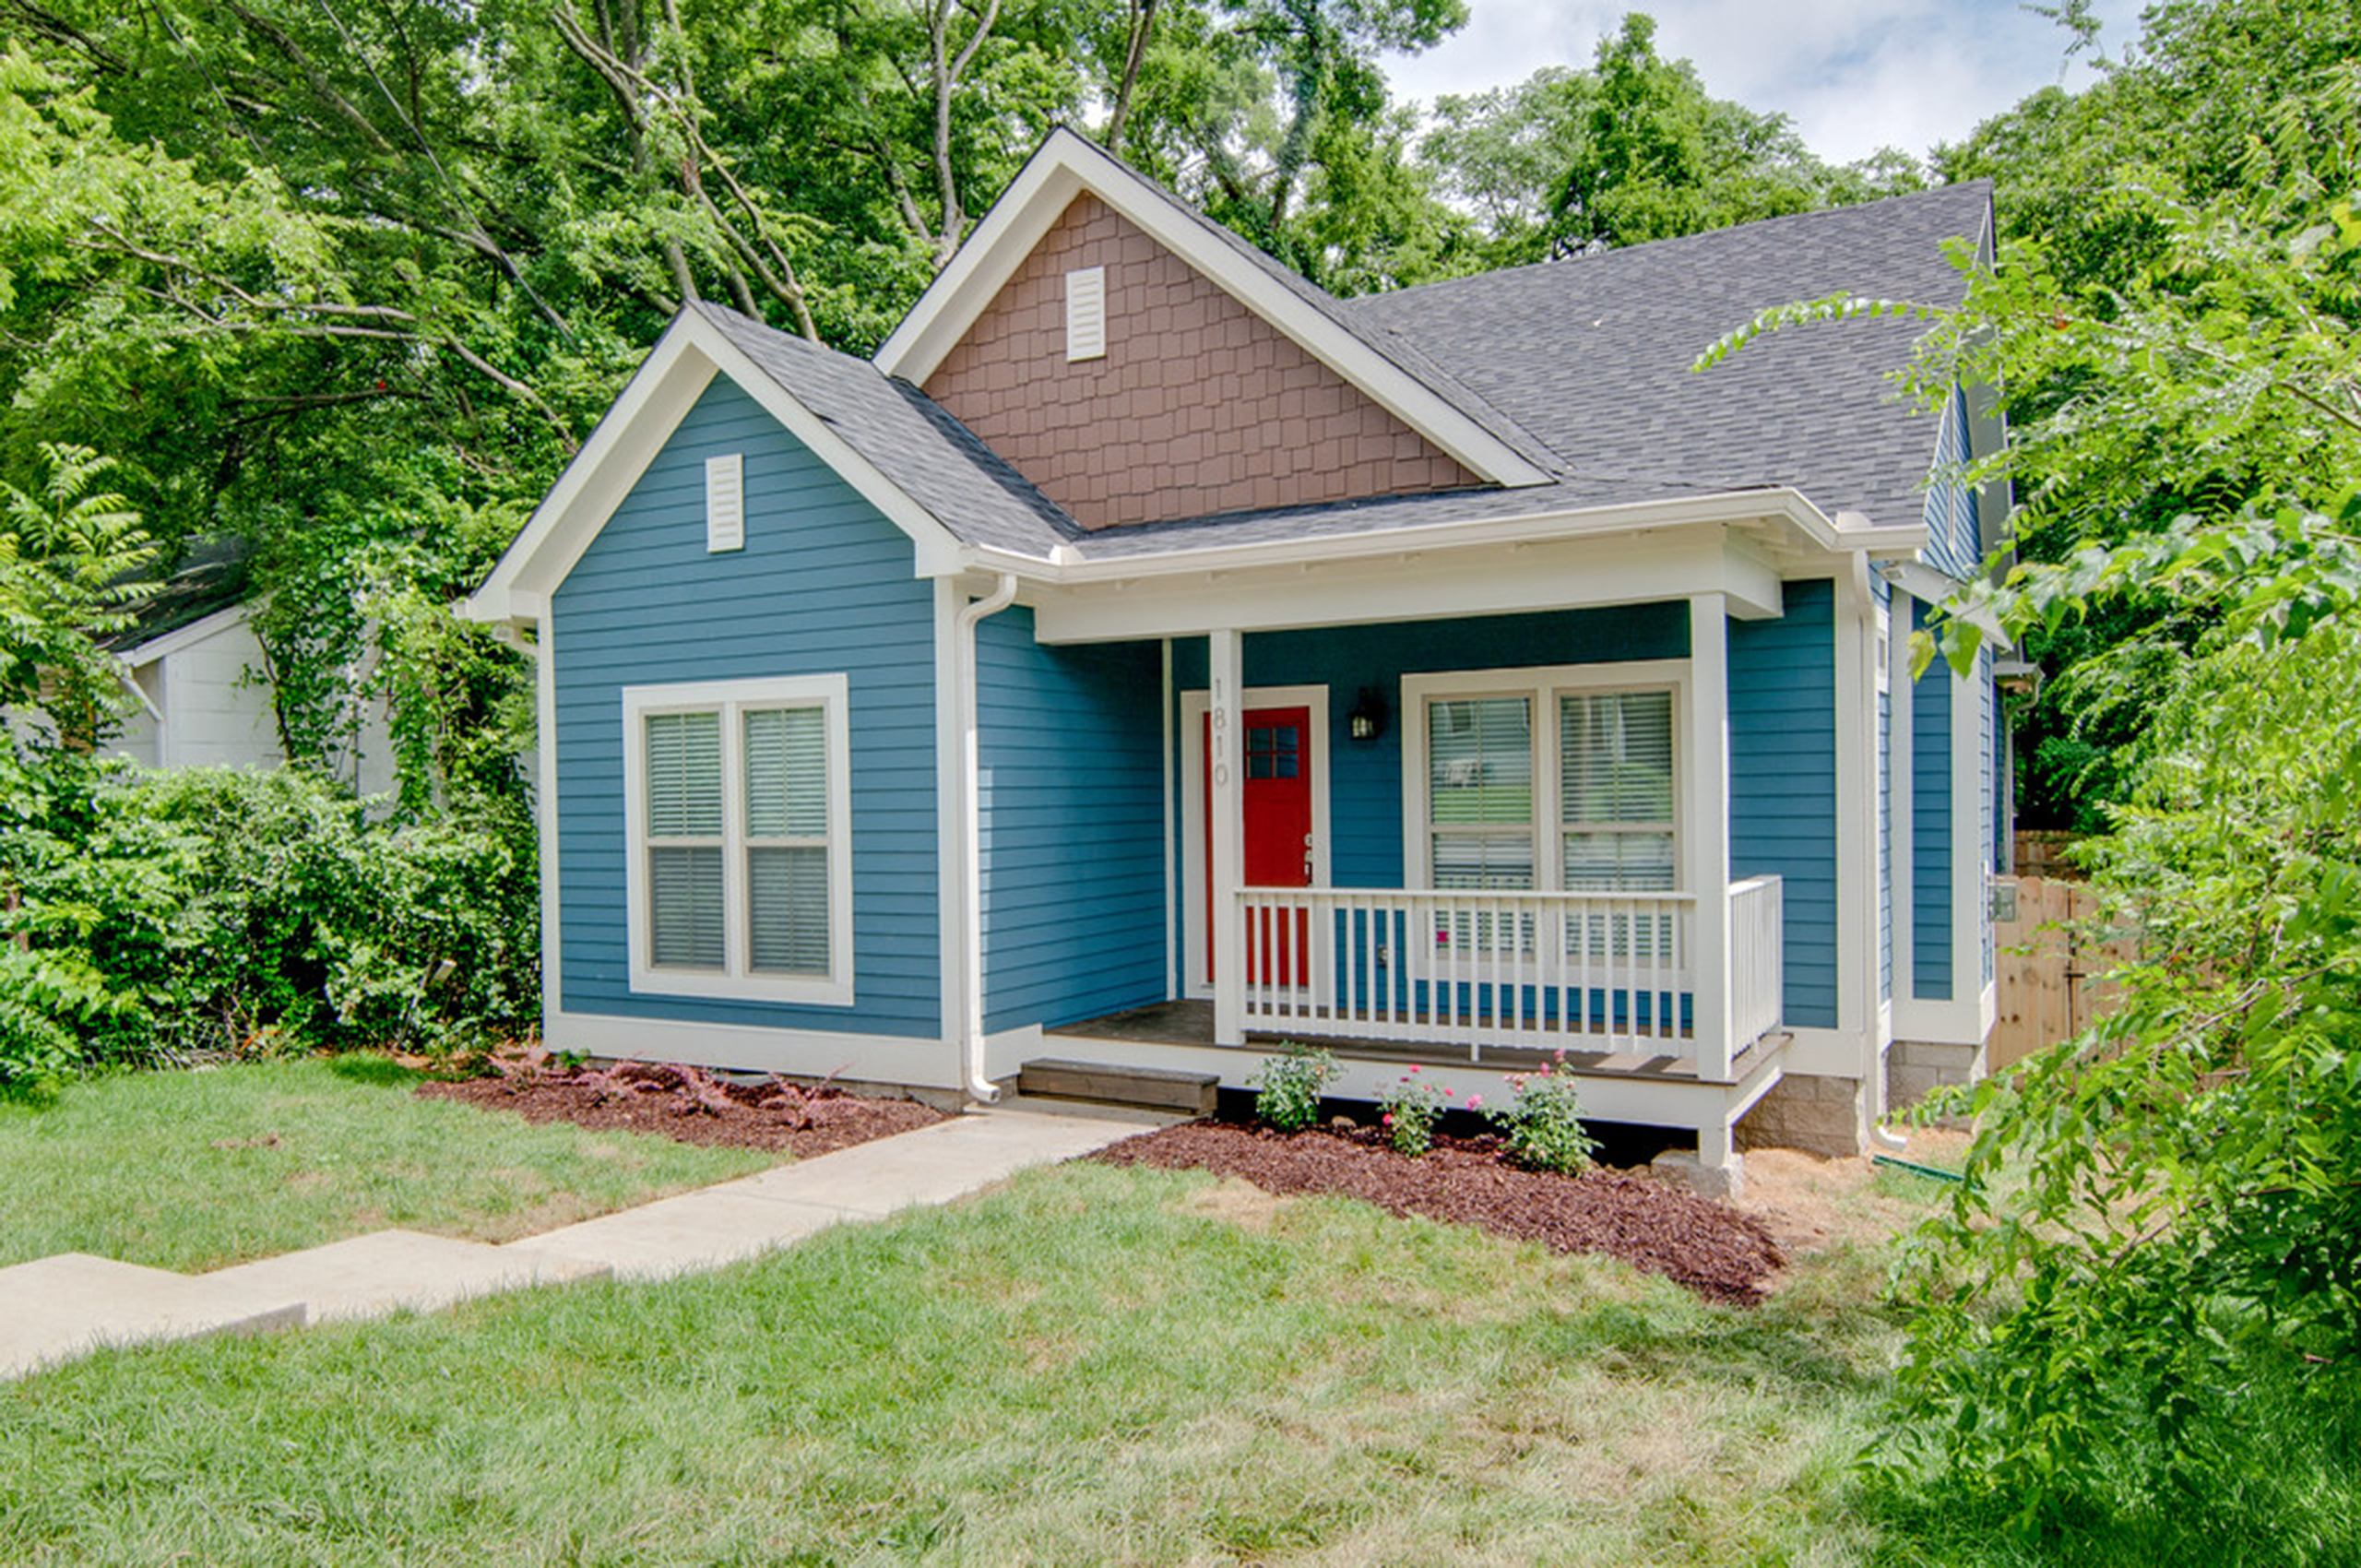 Plan1421055Image_2_12_2014_833_2  Story Home Plans With Front Porch on 1 story home plans with porch, 2 story home plans with portico, 2 story home plans with pool, 3 car garage plans with porch, 2 story home plans with cupola,